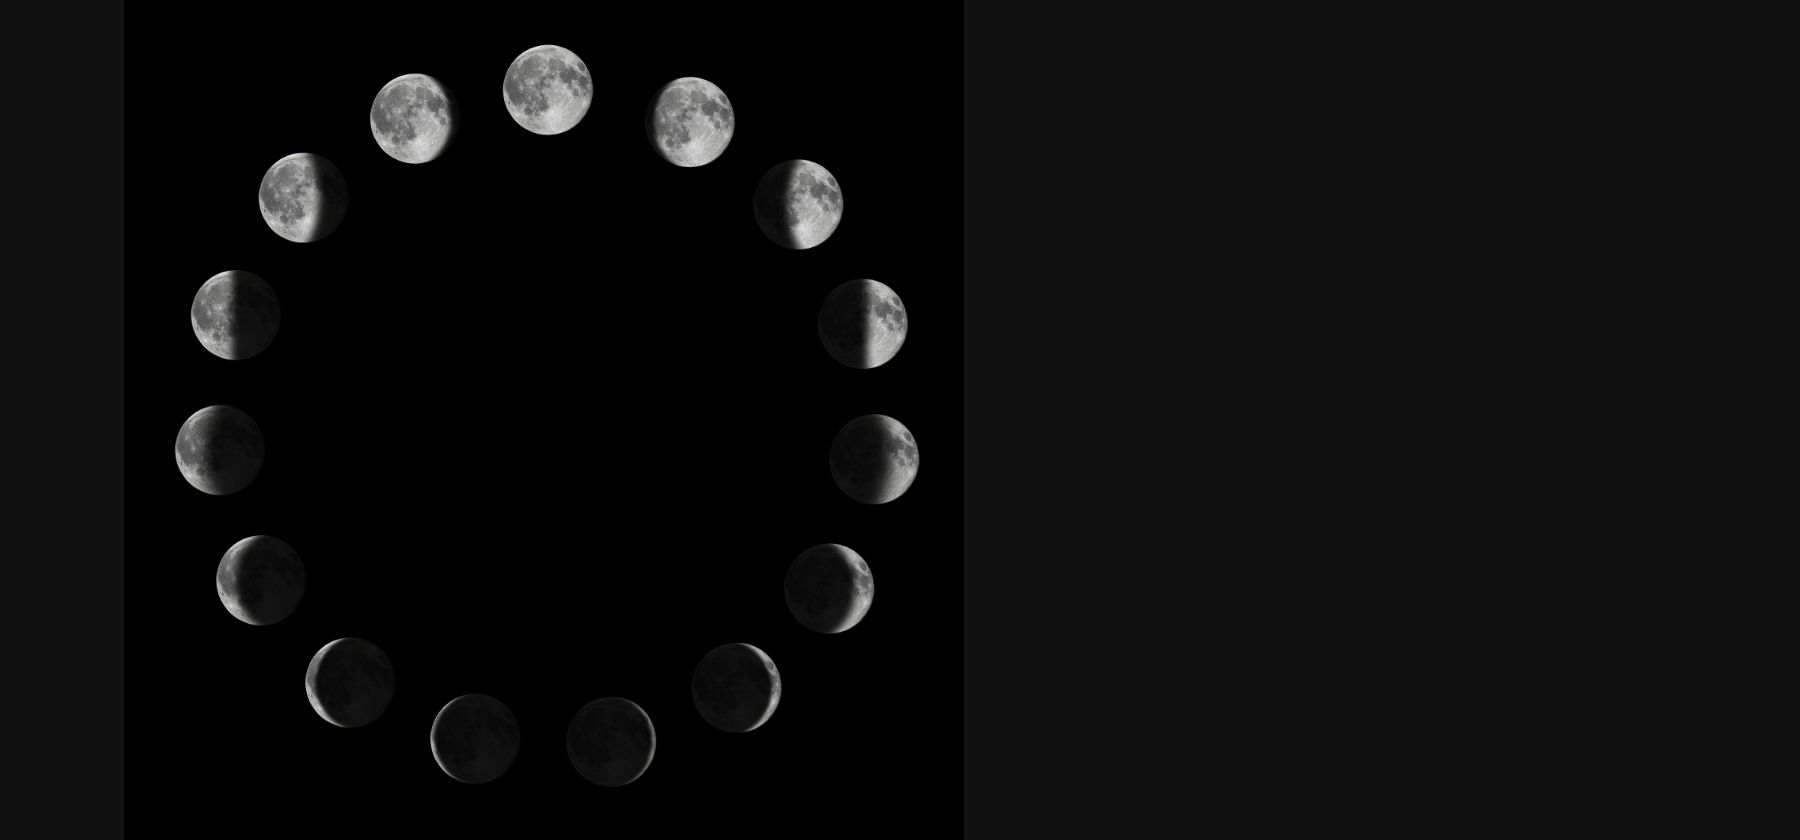 Phases of the Moon (circular)